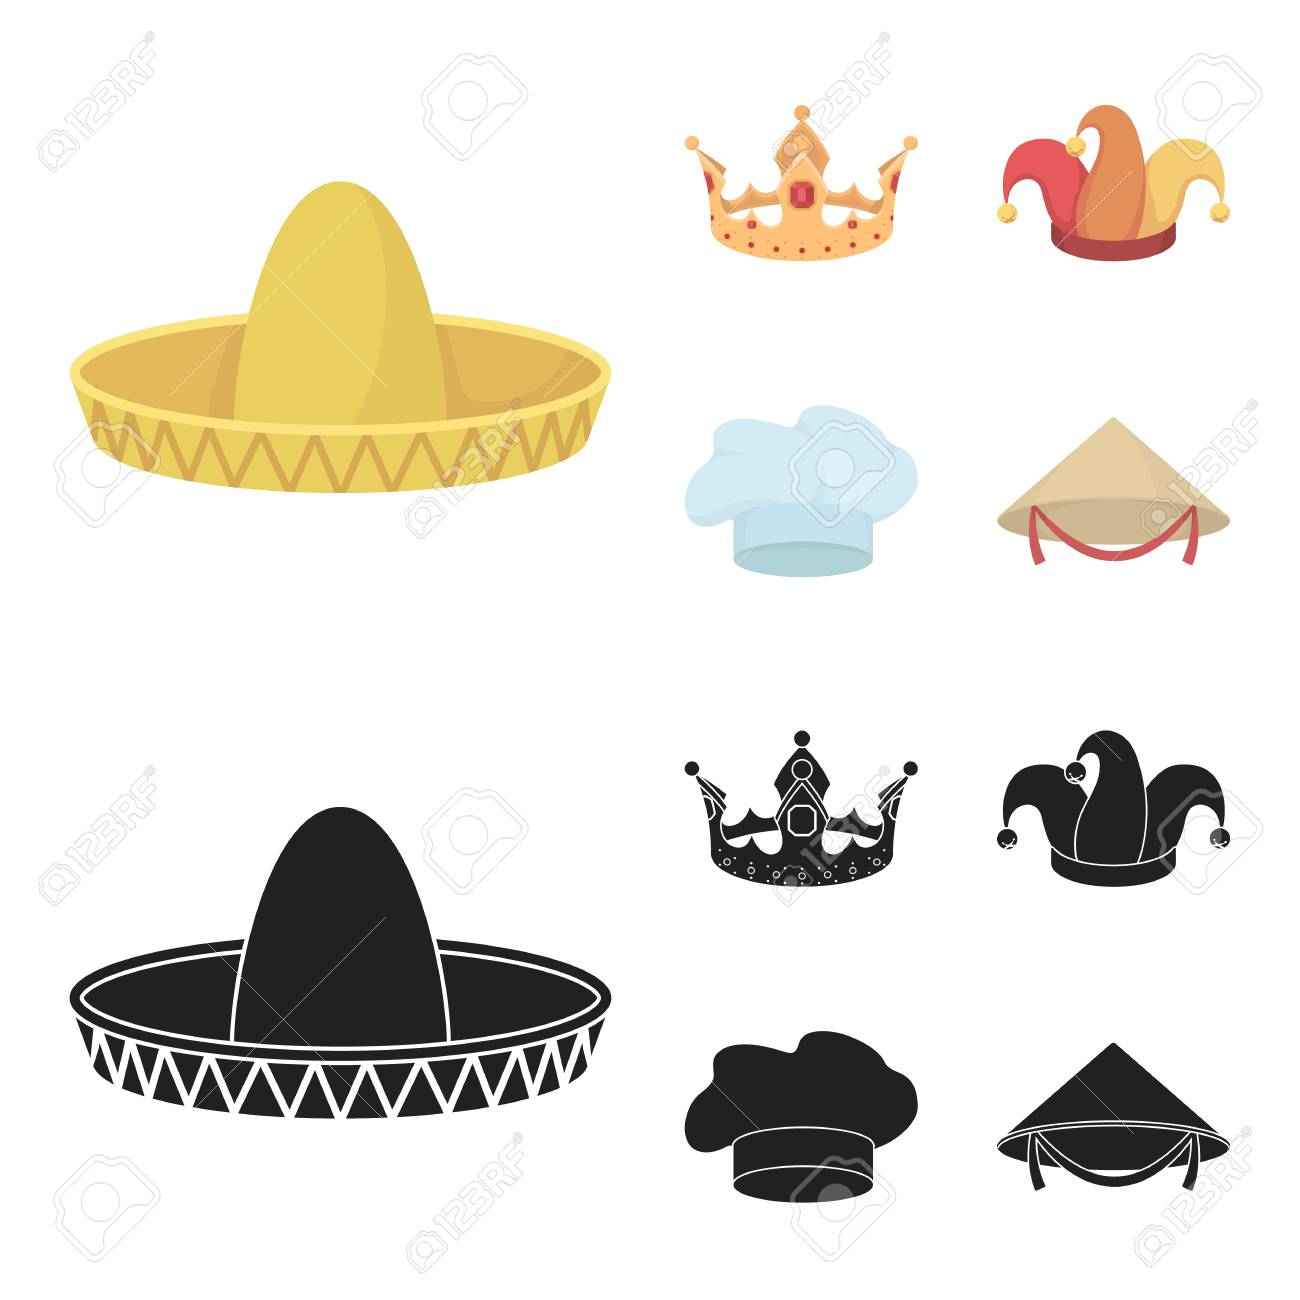 Crown Jester Cap Cook Cone Hats Set Collection Icons In Cartoon Black Royalty Free Cliparts Vectors And Stock Illustration Image 100229908 I love anime, cartoons, comics, and despite being an introvert love meeting new people. 123rf com